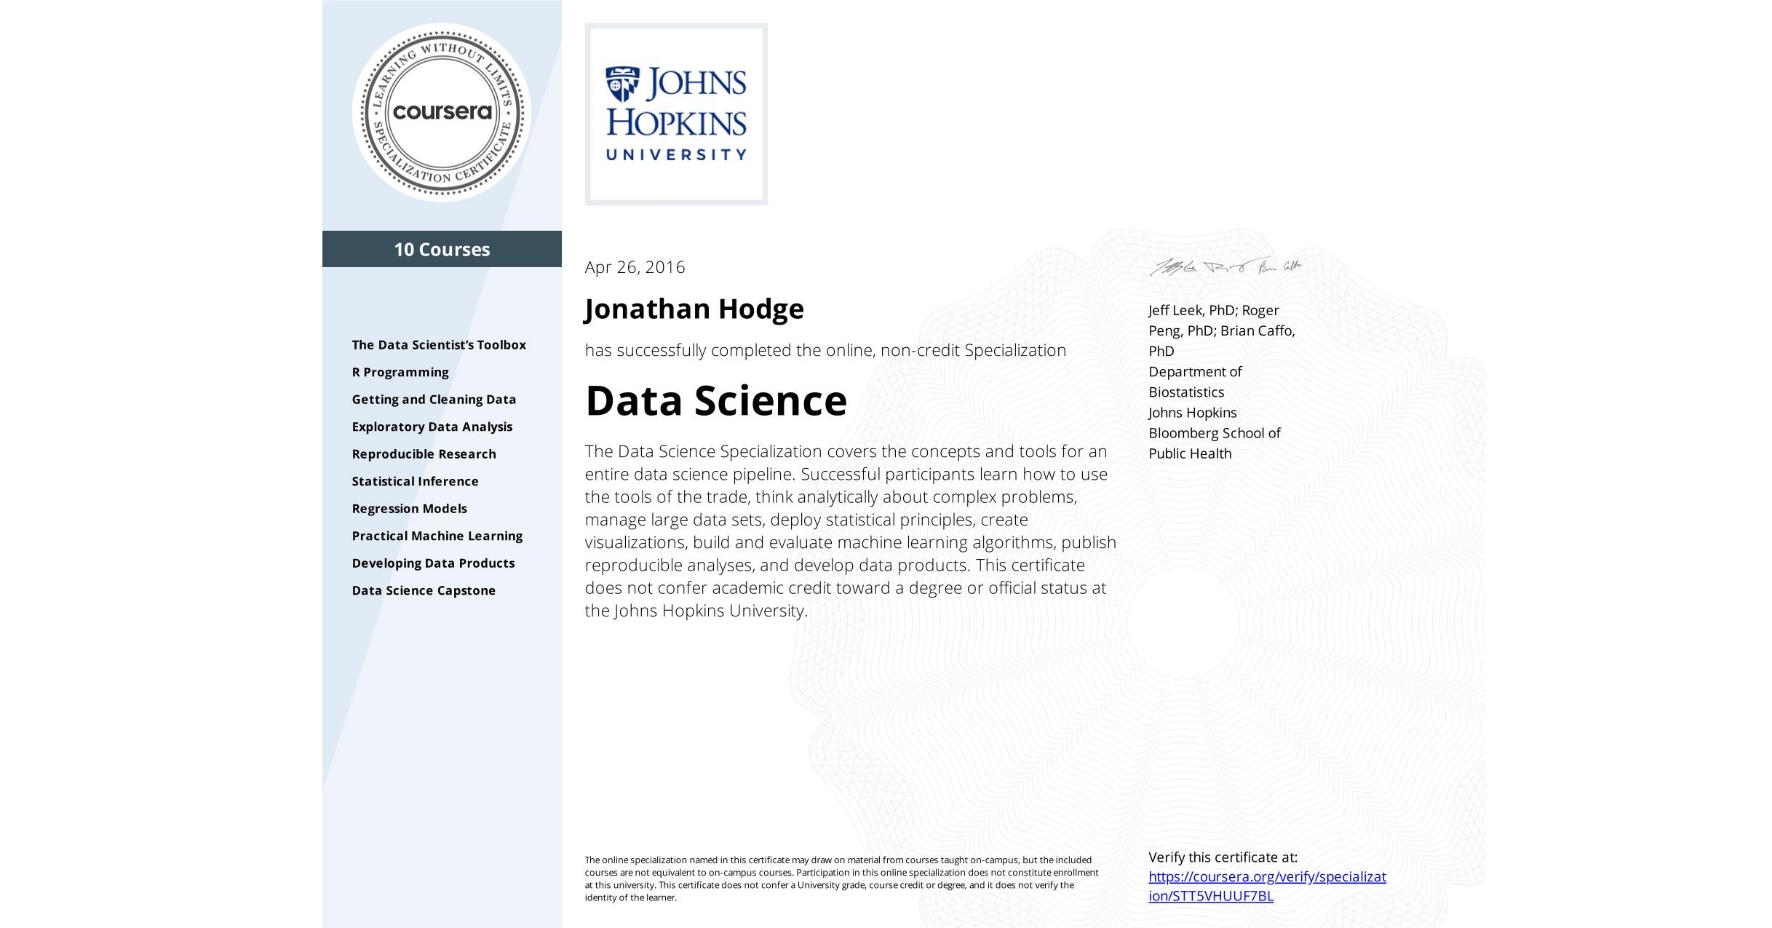 View certificate for Jonathan Hodge, Data Science, offered through Coursera. The Data Science Specialization covers the concepts and tools for an entire data science pipeline. Successful participants learn how to use the tools of the trade, think analytically about complex problems, manage large data sets, deploy statistical principles, create visualizations, build and evaluate machine learning algorithms, publish reproducible analyses, and develop data products.    This certificate does not confer academic credit toward a degree or official status at the Johns Hopkins University.